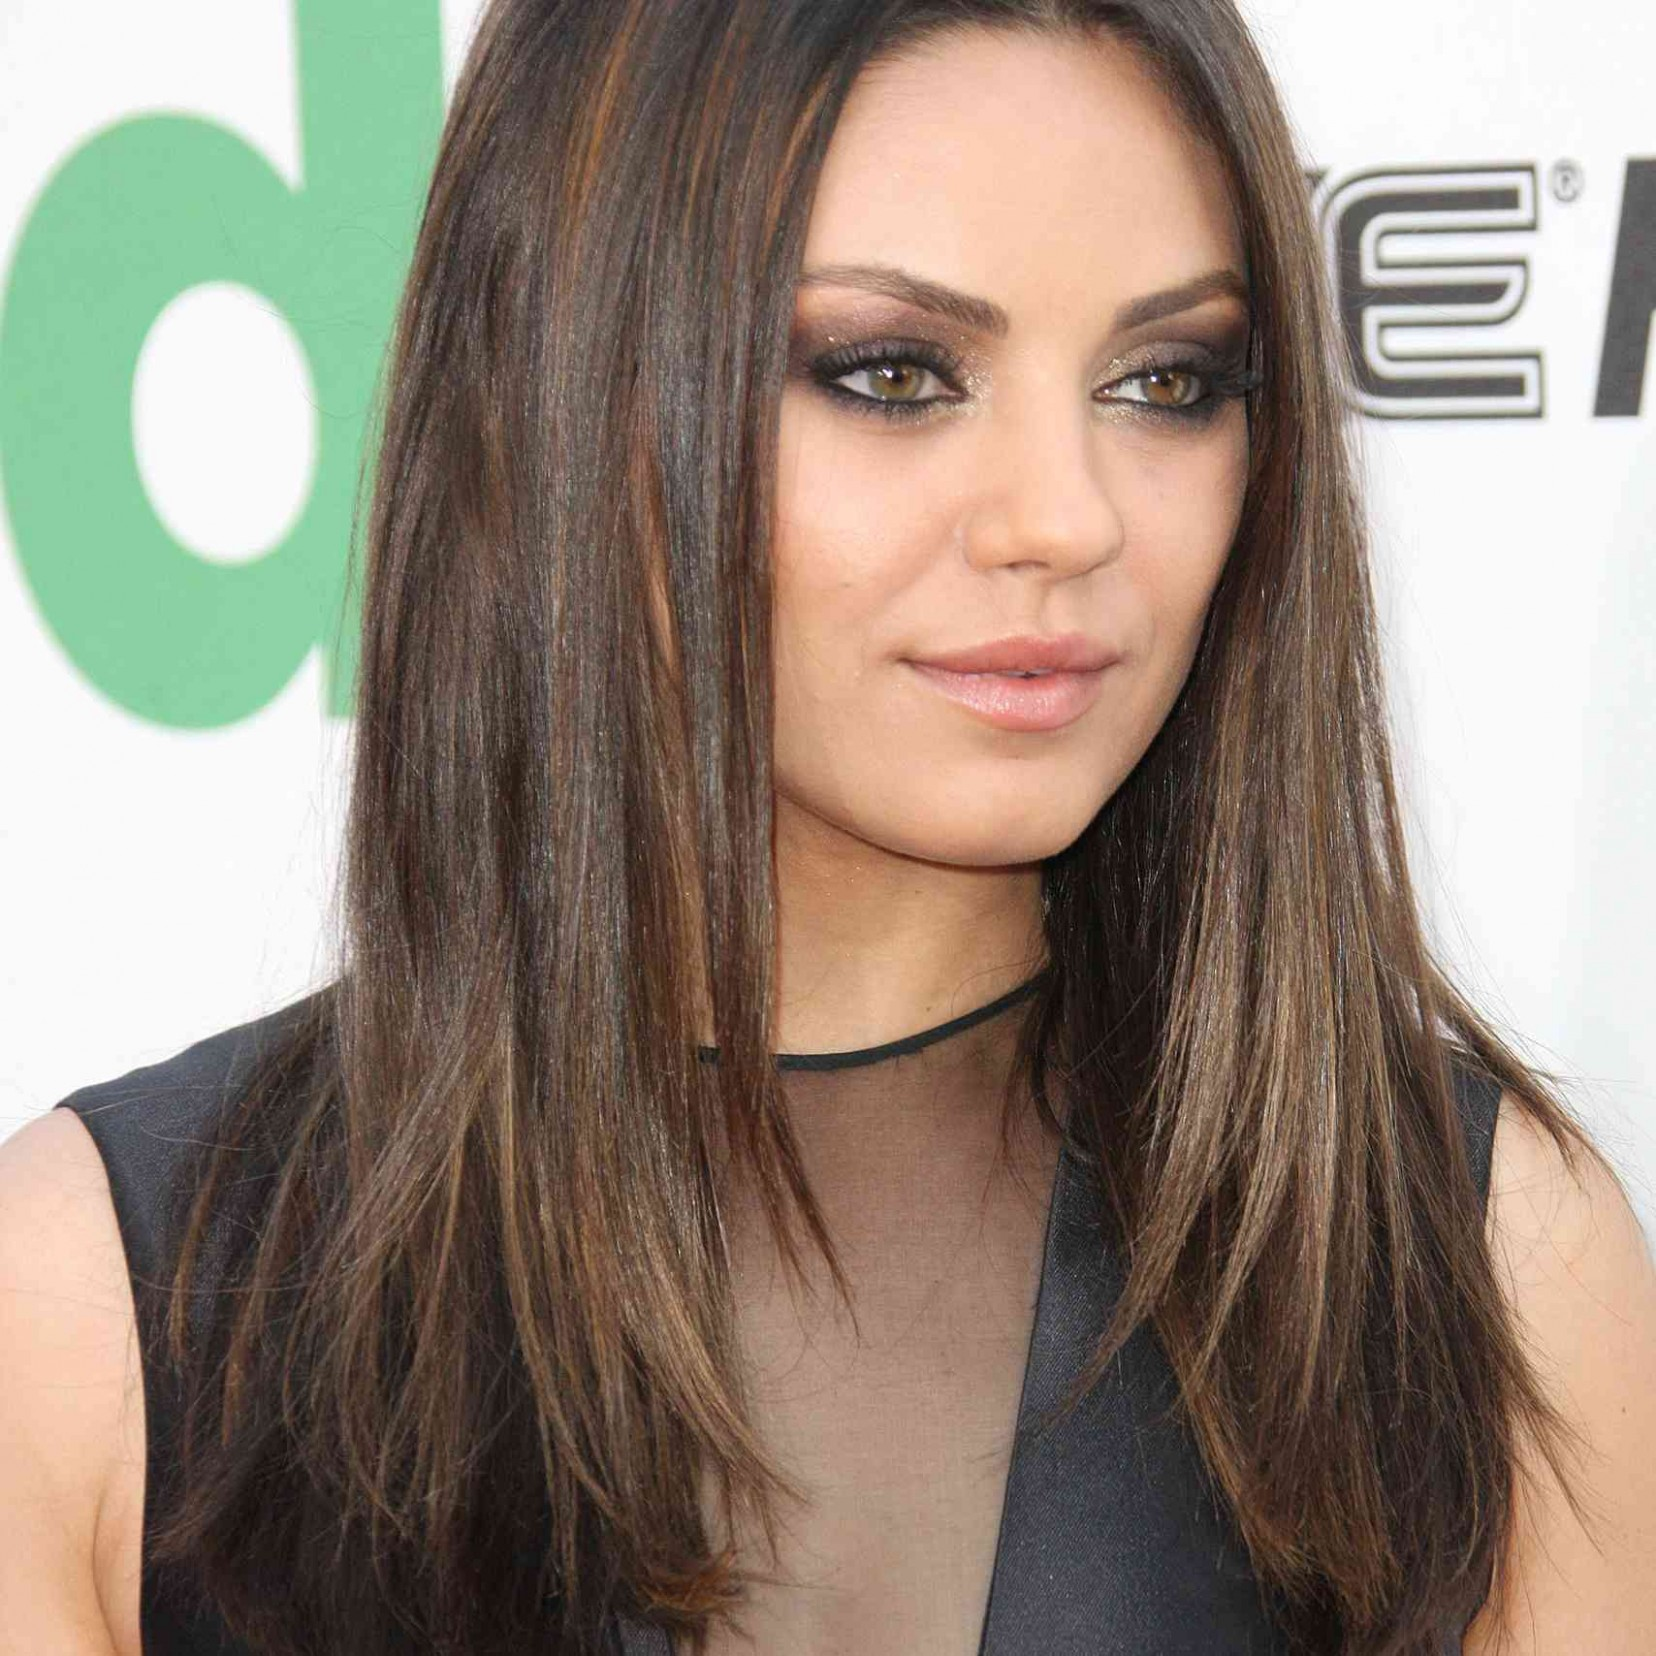 10 of the Best Hairstyles for Round Faces